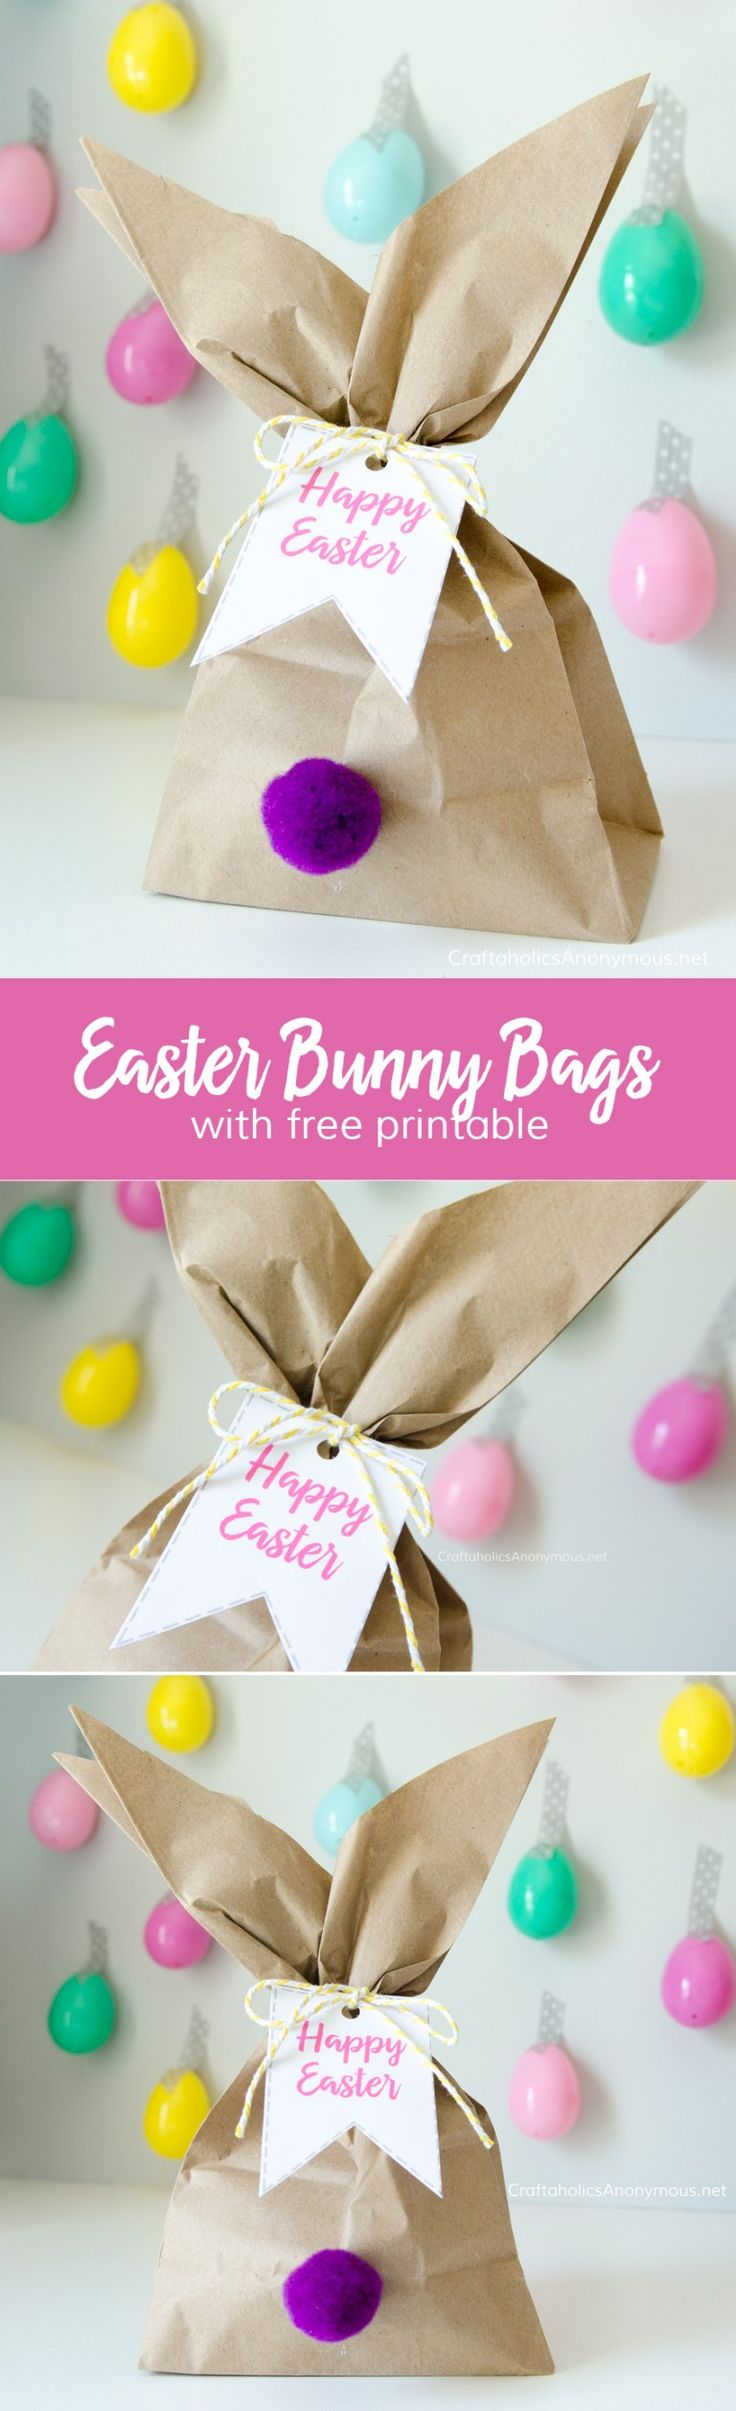 46 best Projects to Try images on Pinterest | Easter, Easter snacks ...